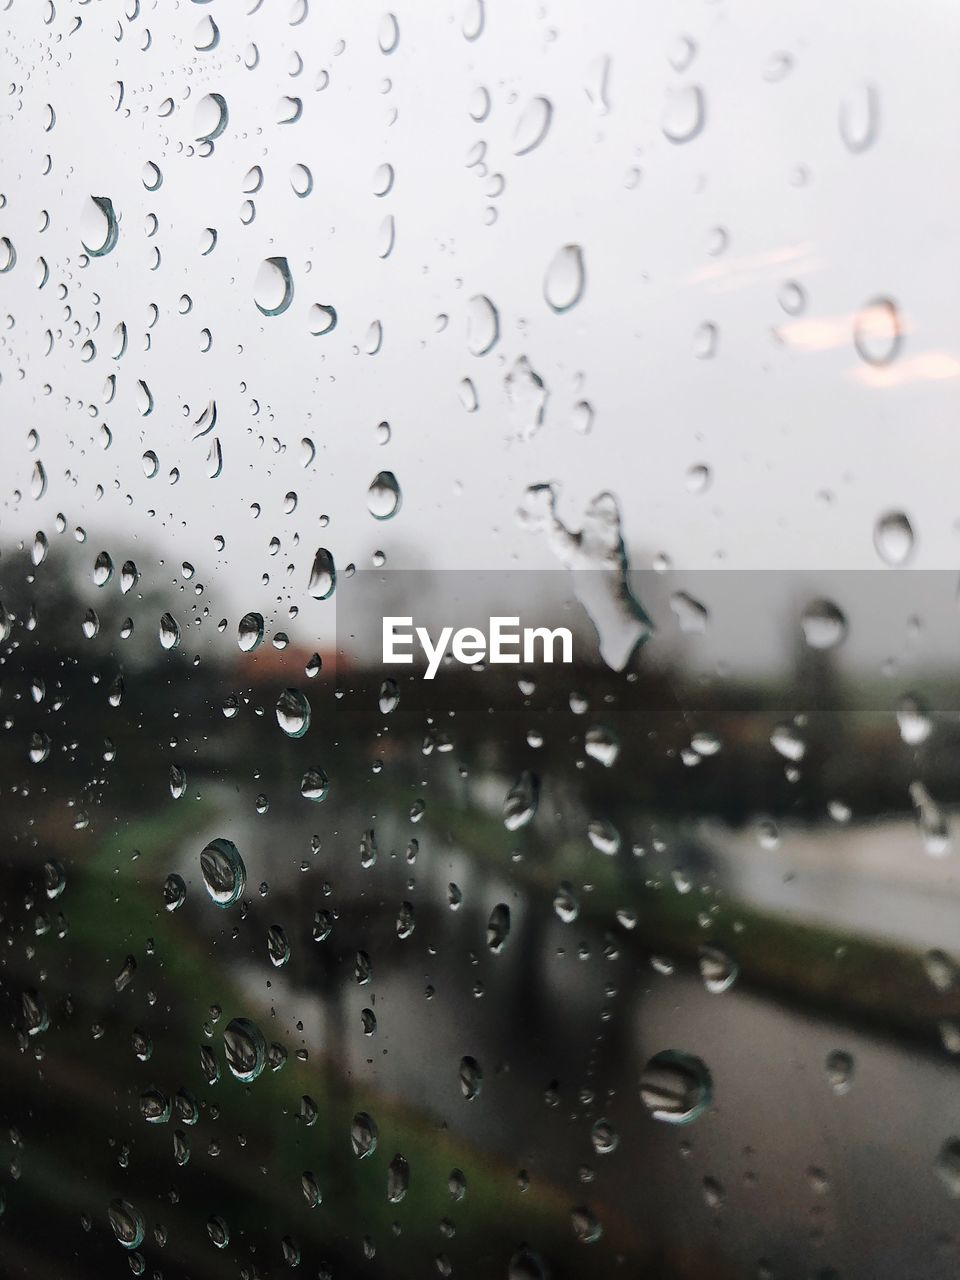 CLOSE-UP OF WET WINDOW AGAINST SKY